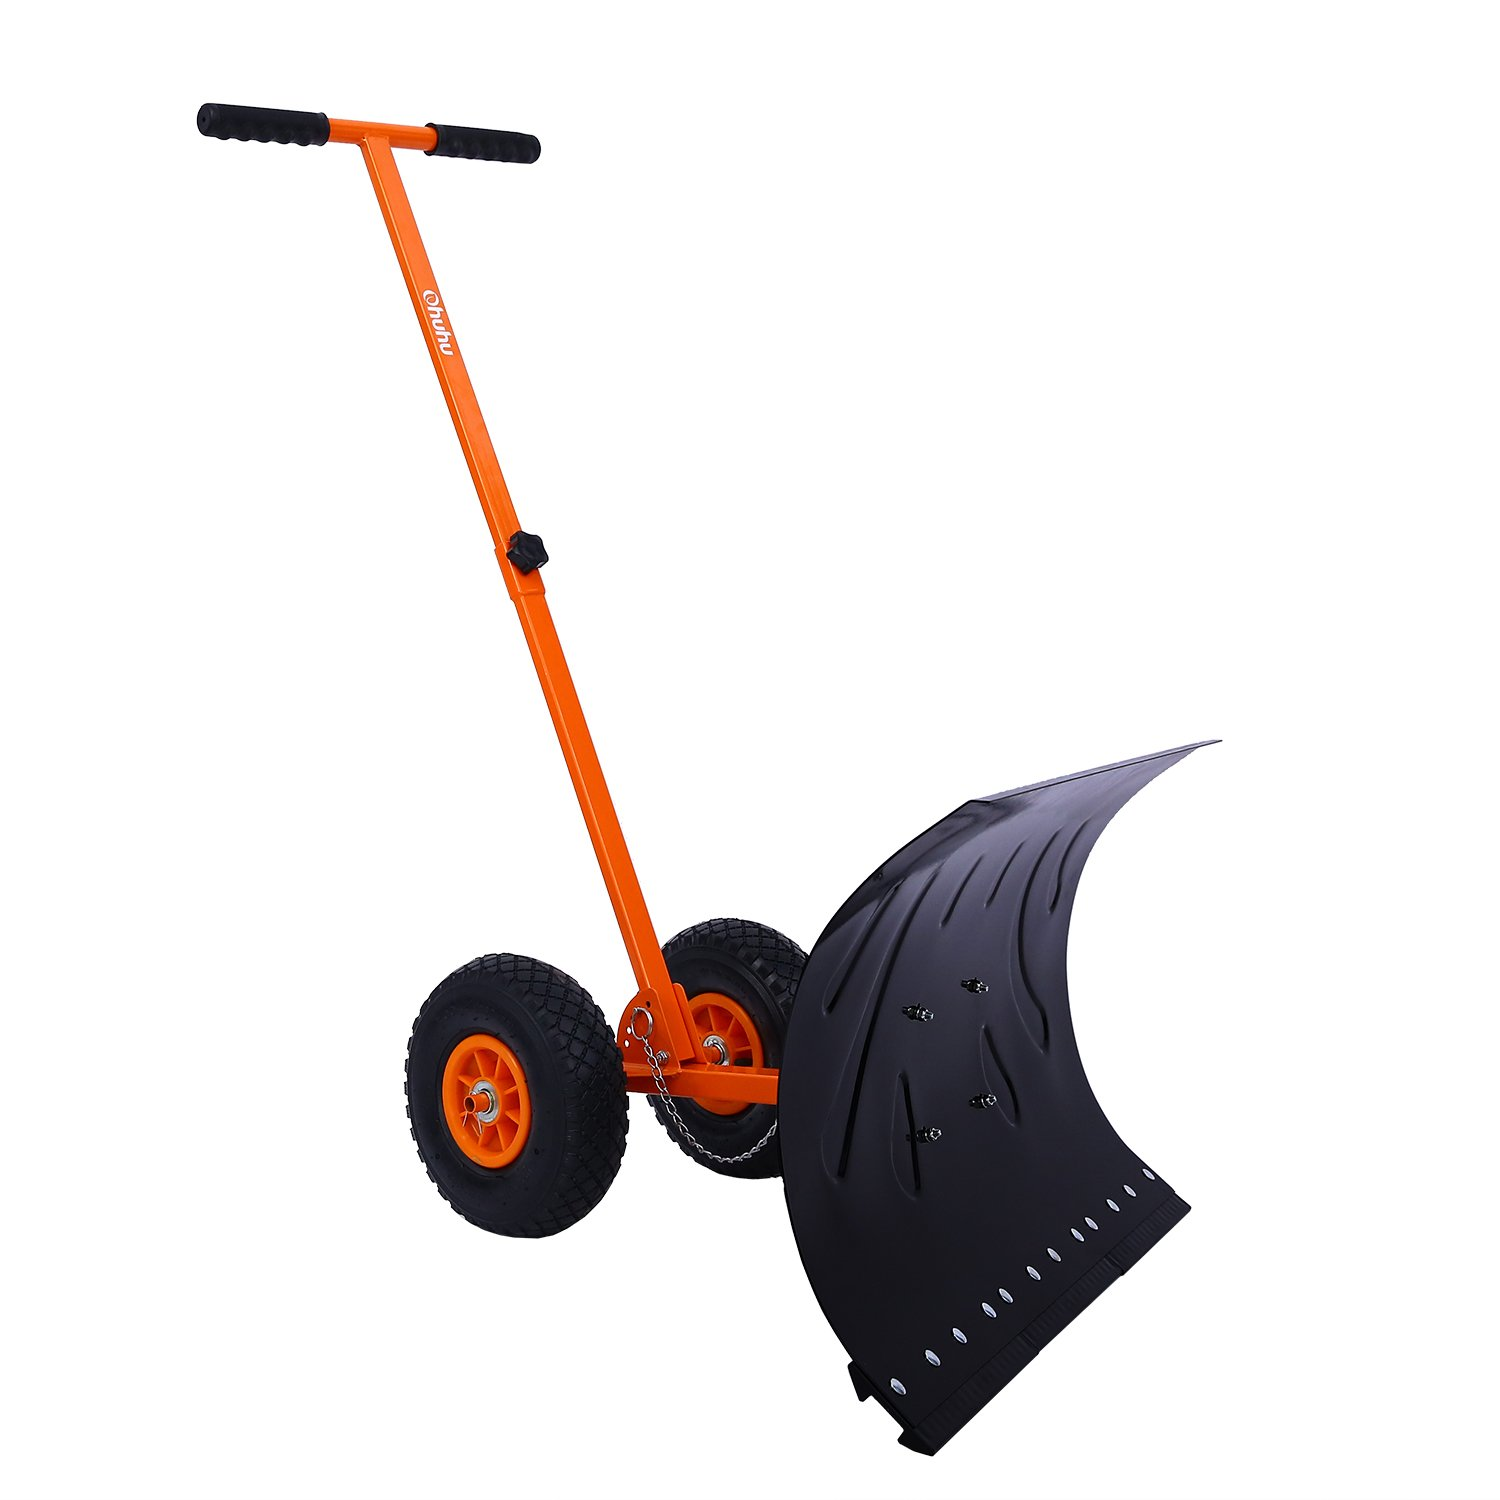 Ohuhu Adjustable Wheeled Snow Shovel Pusher, Rolling Snow Plow Shovels Snow Removal Tool